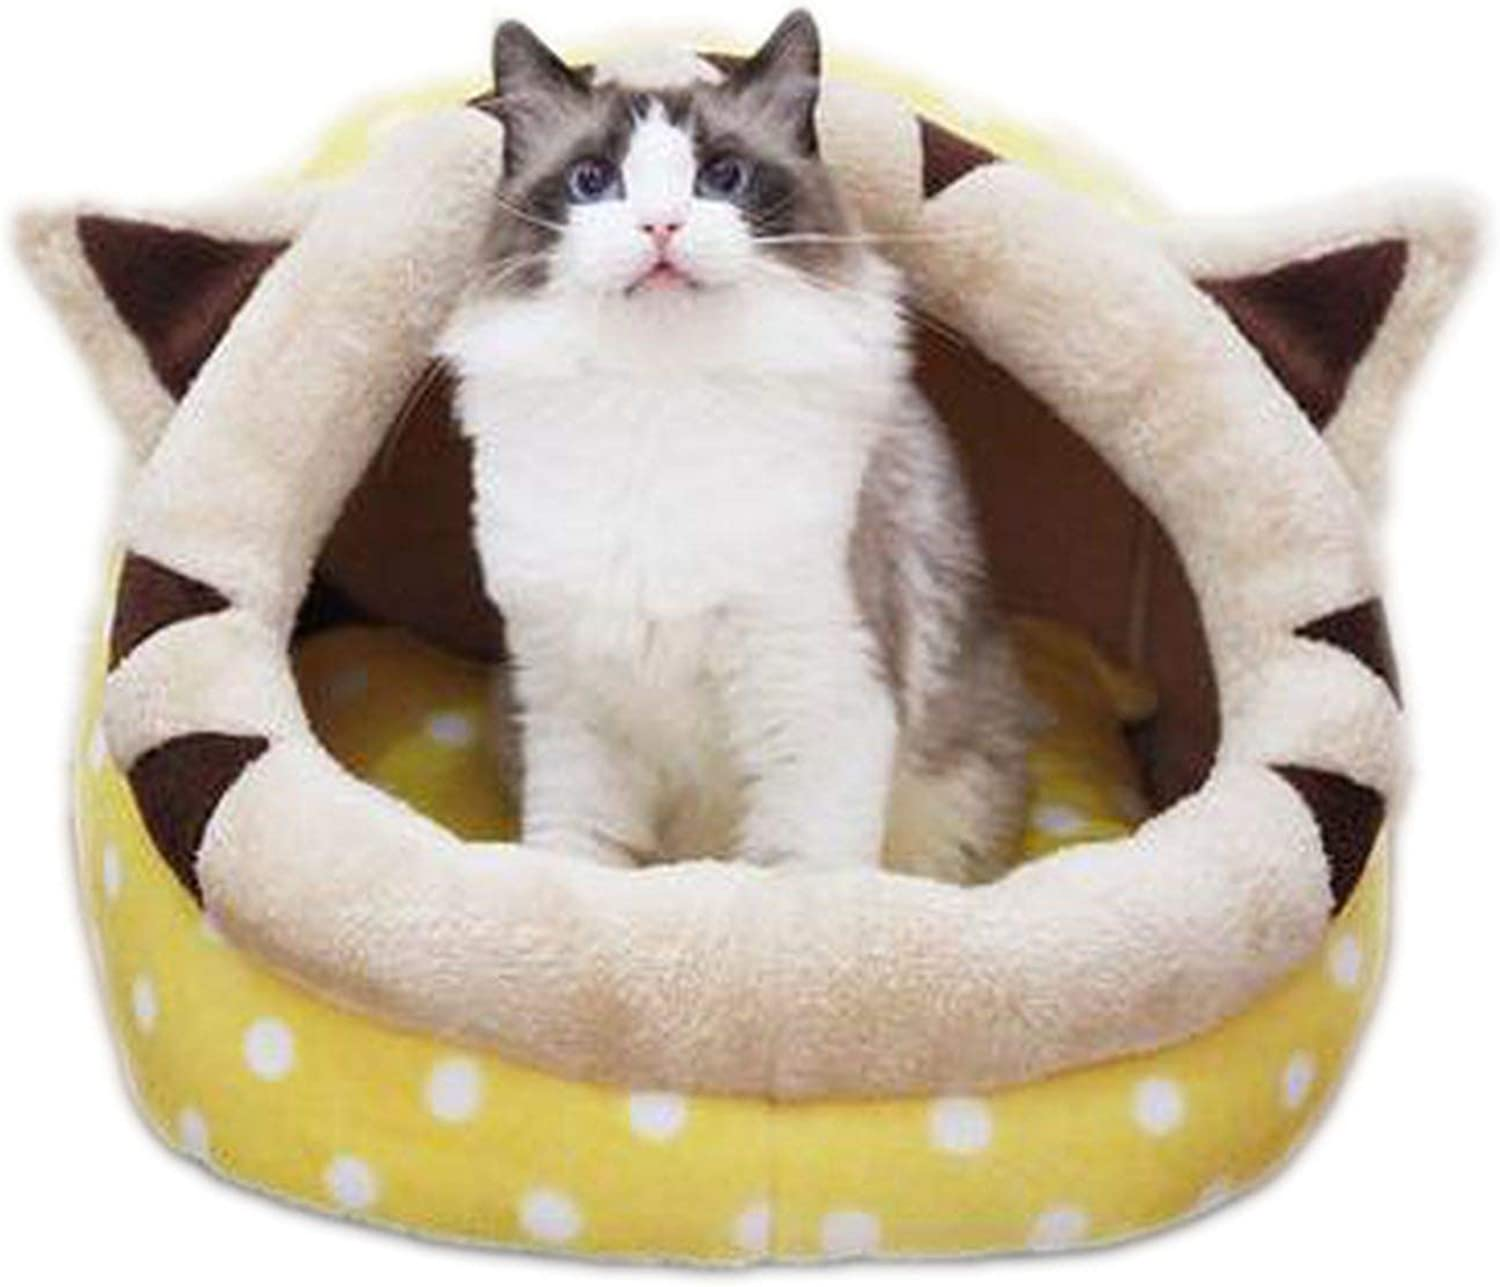 Pet Cat Bed House Warm Puppy Mini Pet Dog Beds Teddy Bed Dog Mat Cat Kennel,Yellow,L 52  48  39cm